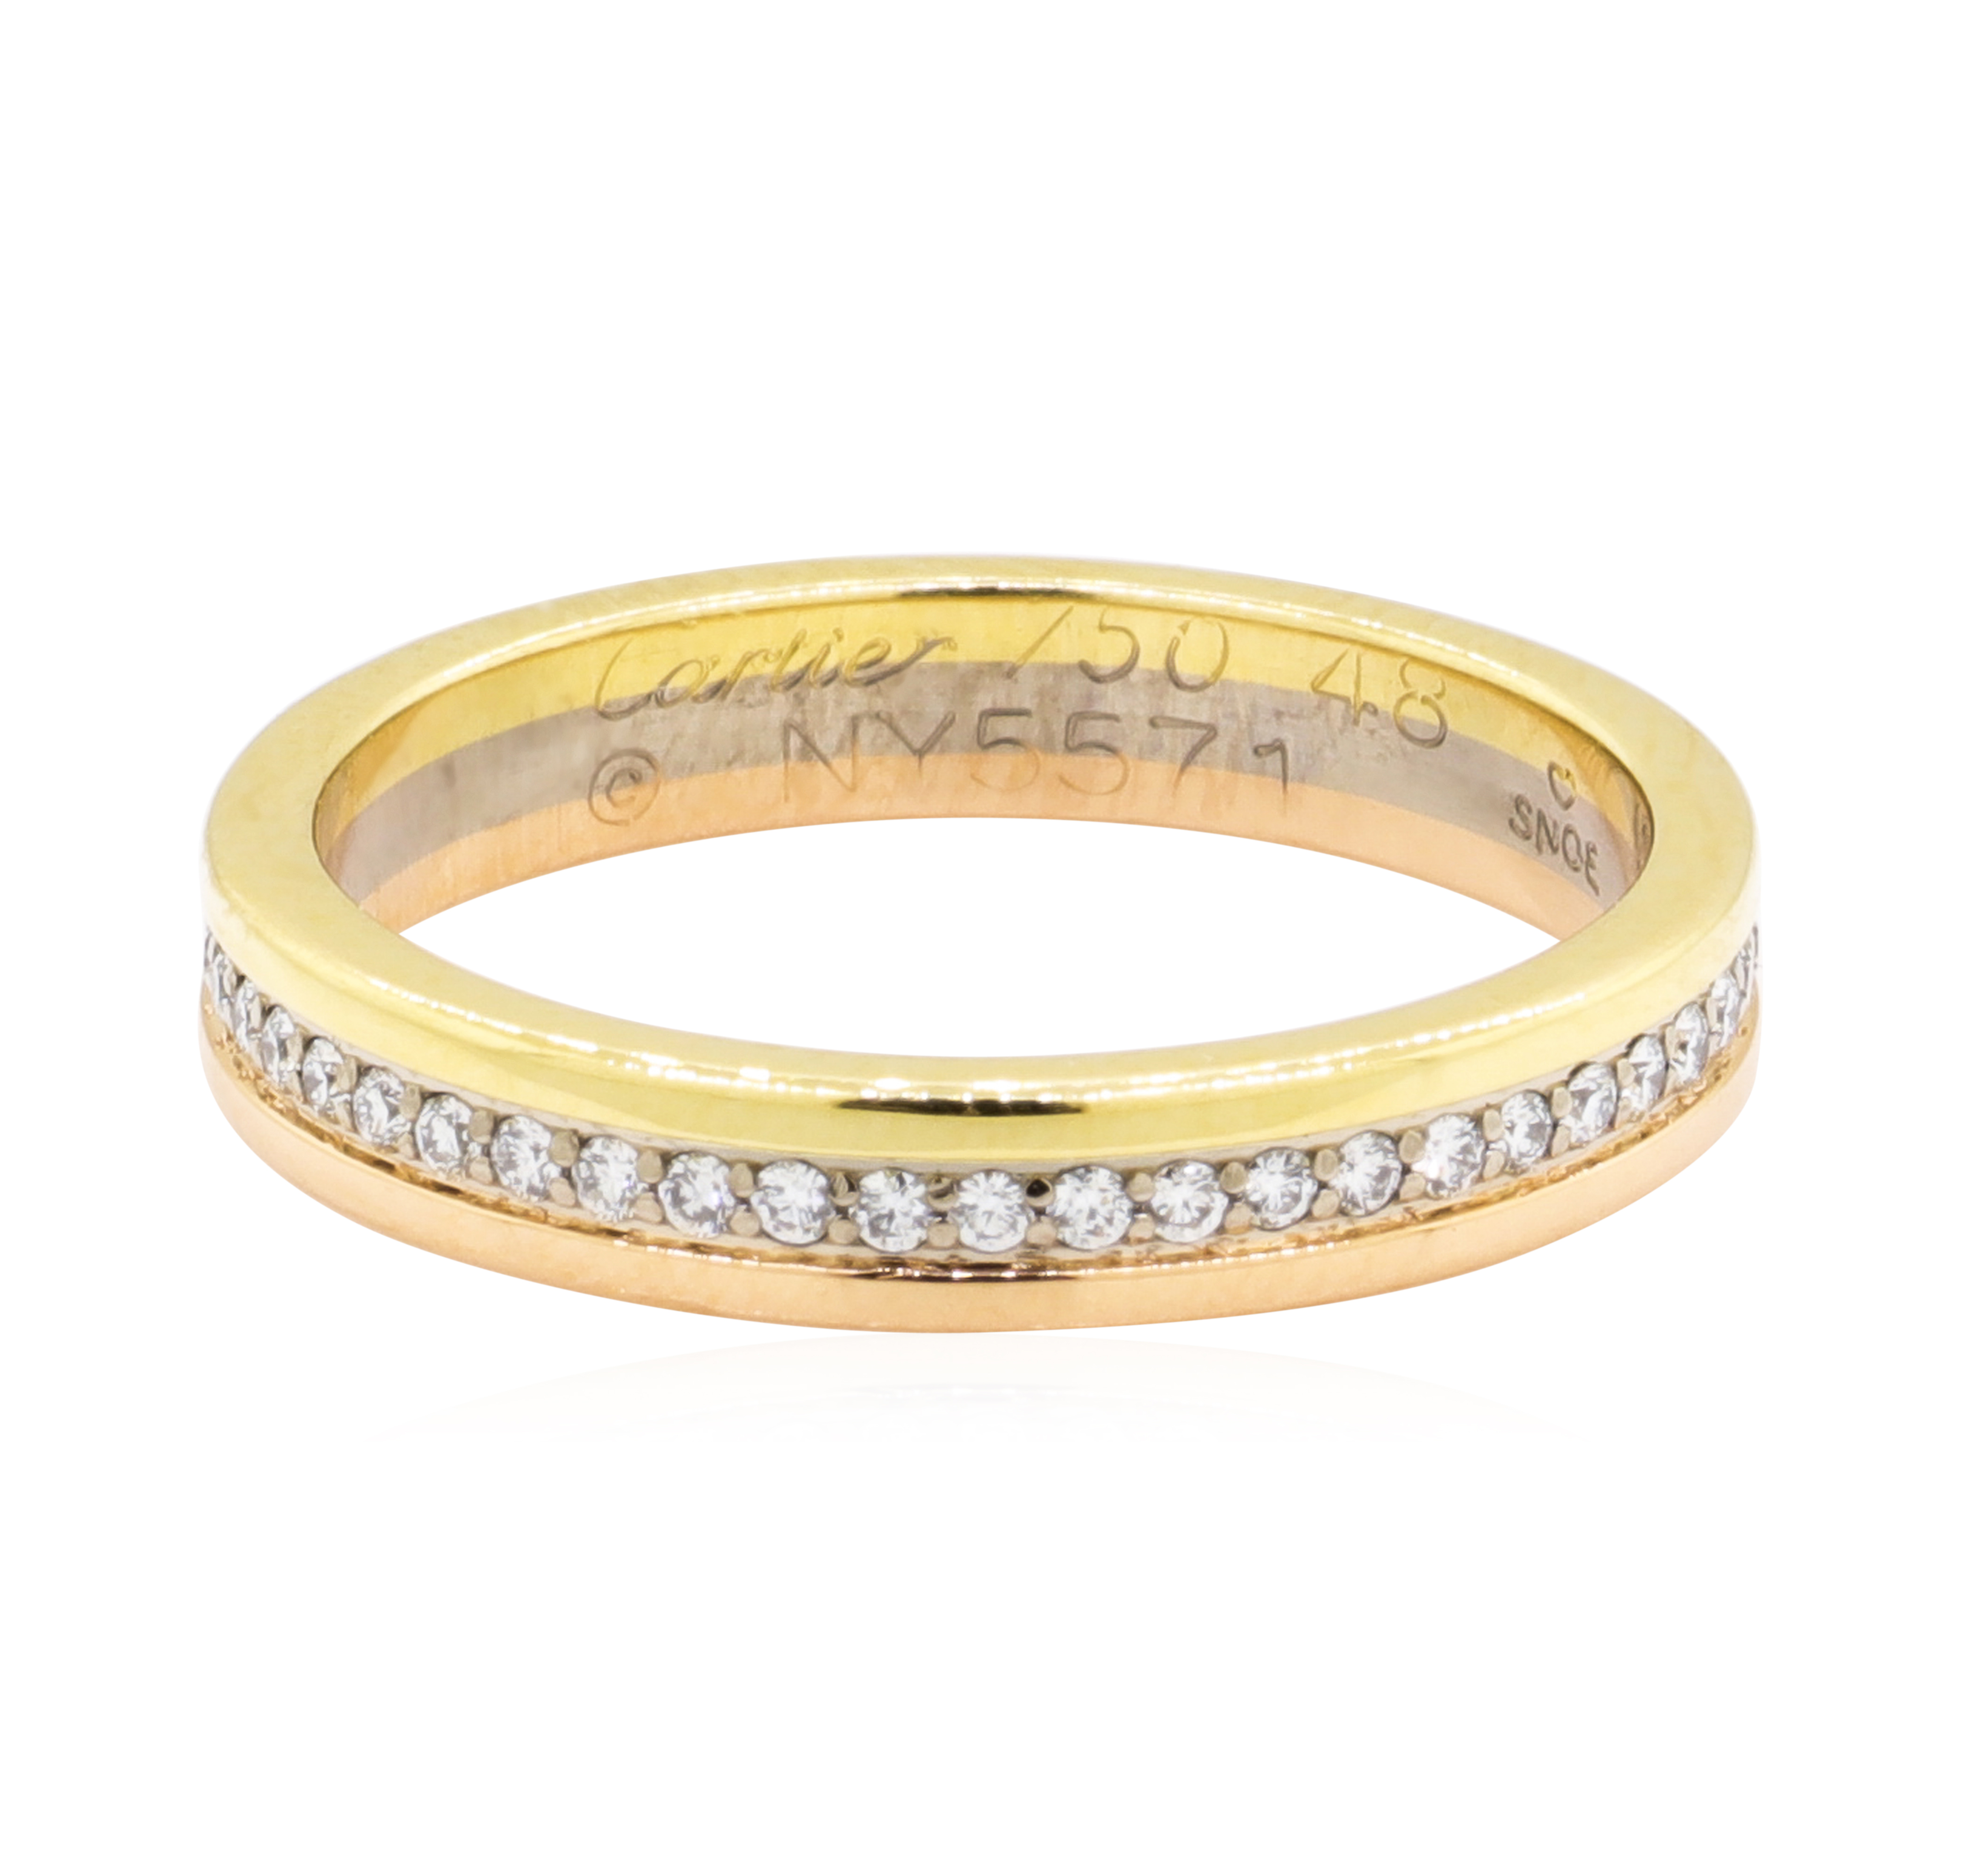 54a83a5a9af1a Cartier 18K Two Tone Gold 3.70 Grams Diamond Eternity Style Band ...